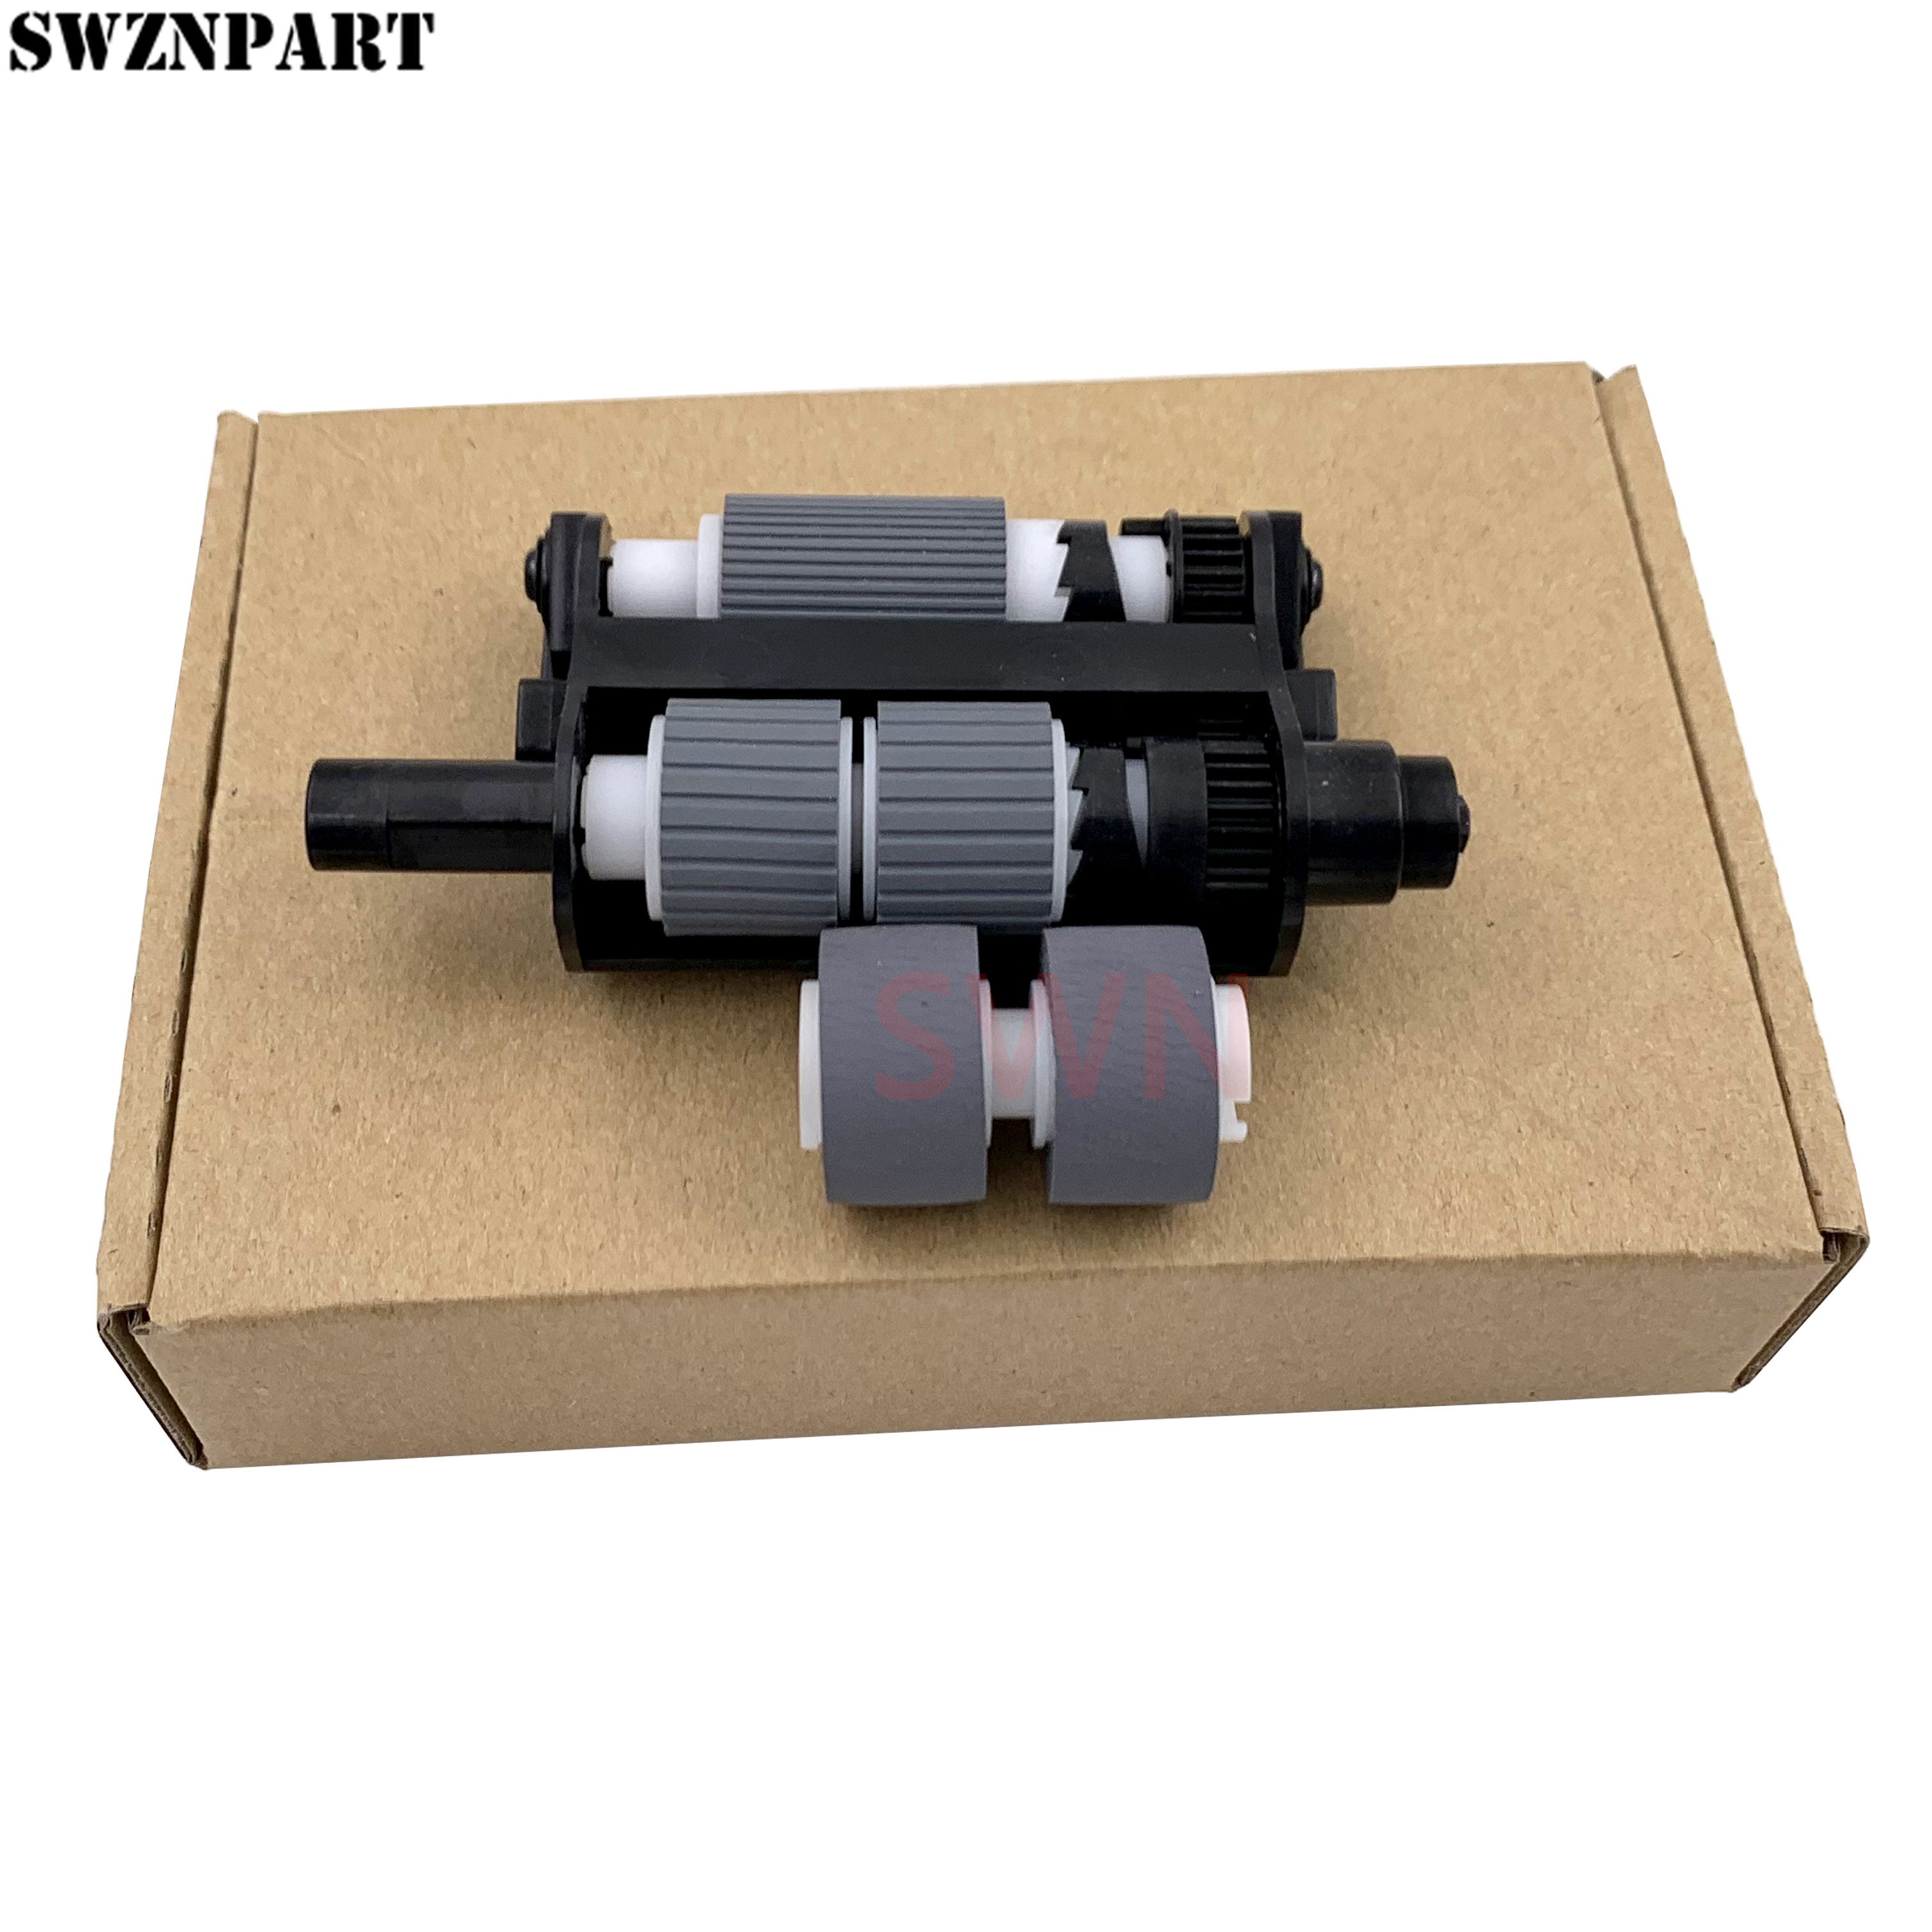 ADF Pickup Roller Assembly